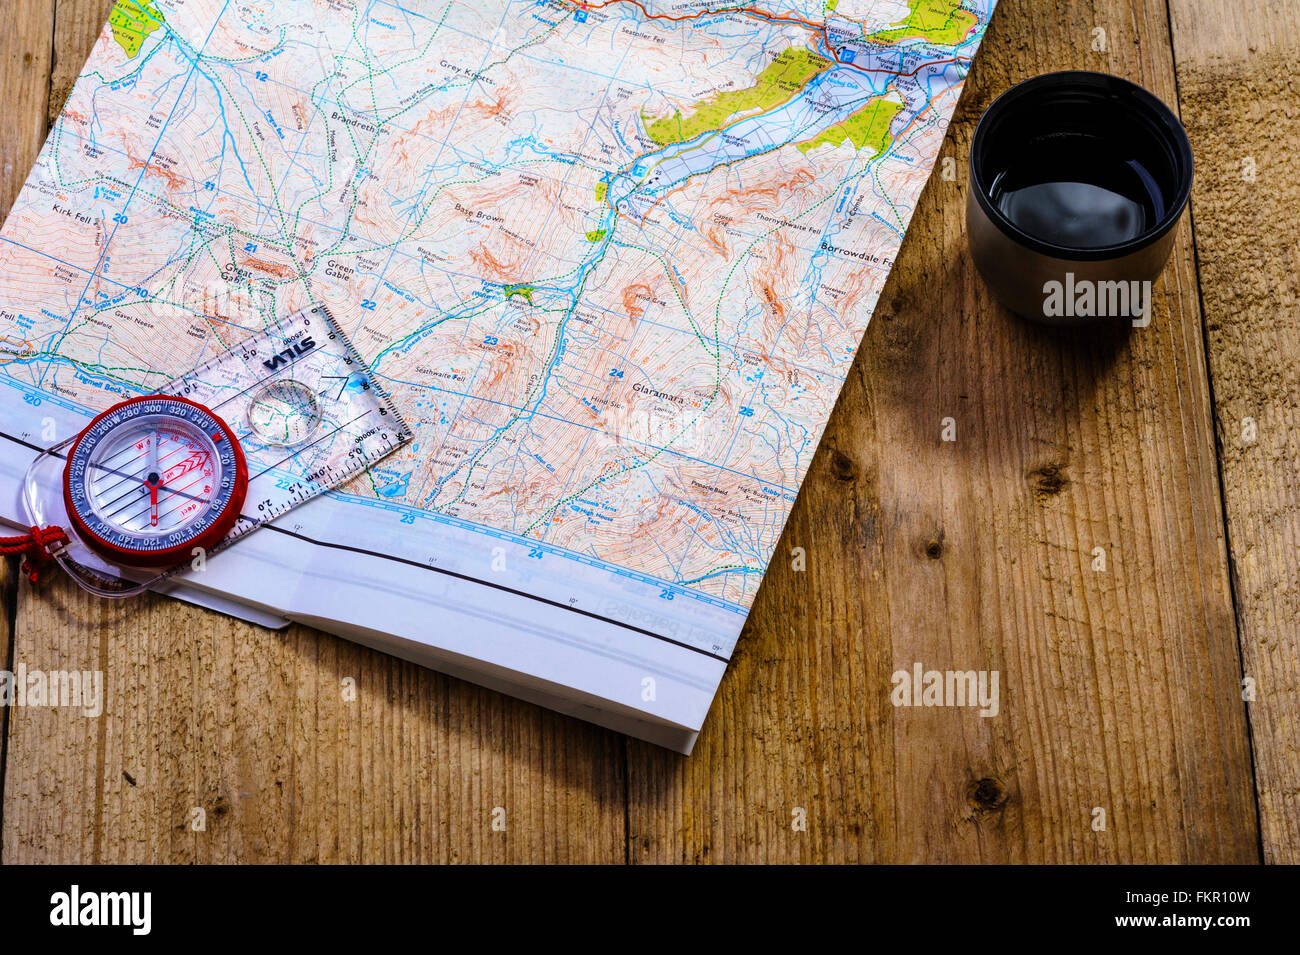 Checking route on a map with a drink. - Stock Image